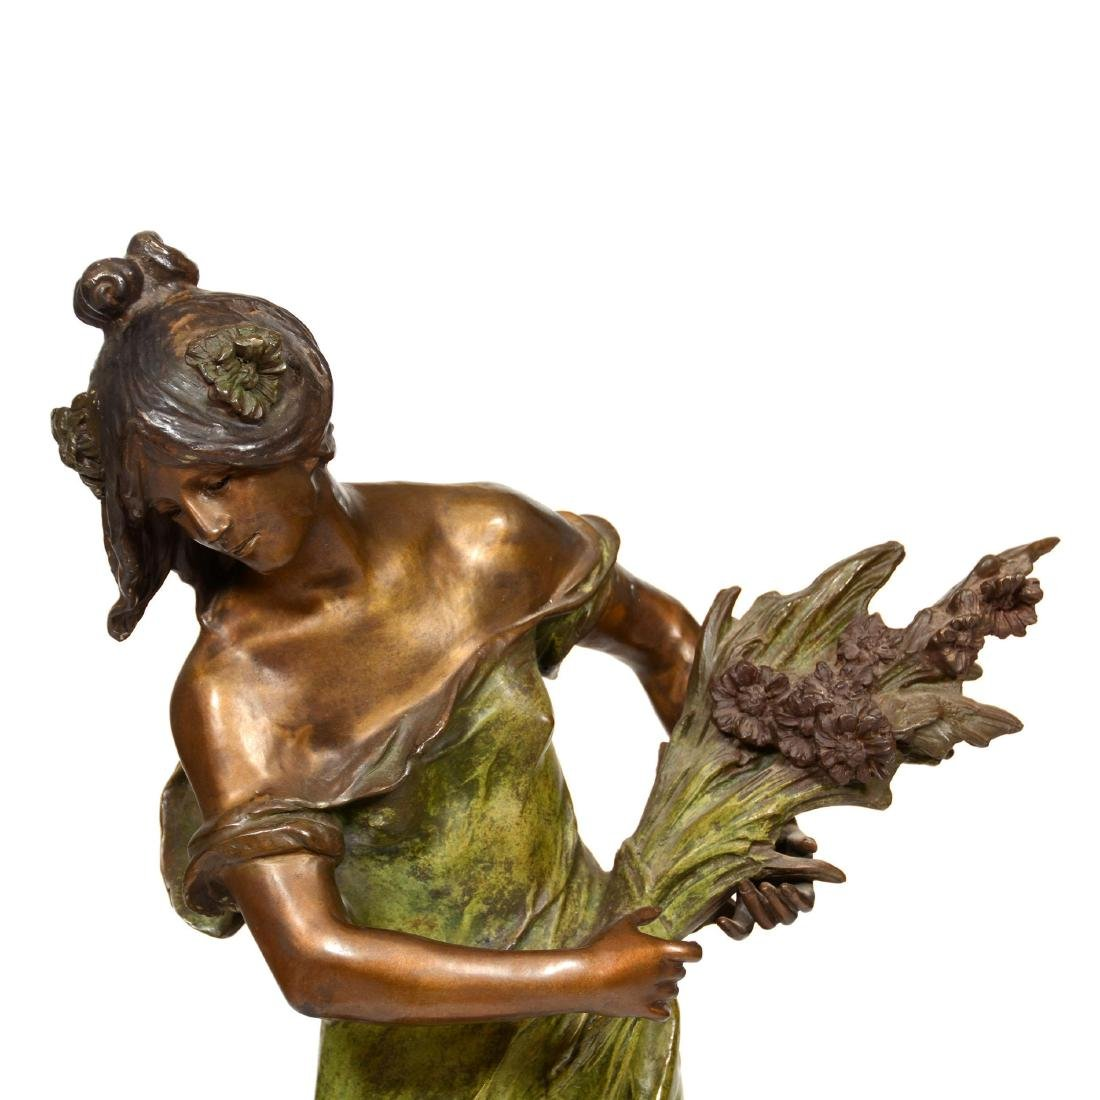 Bronze Sculpture of Woman Holding Sheaf of Wheat - 2